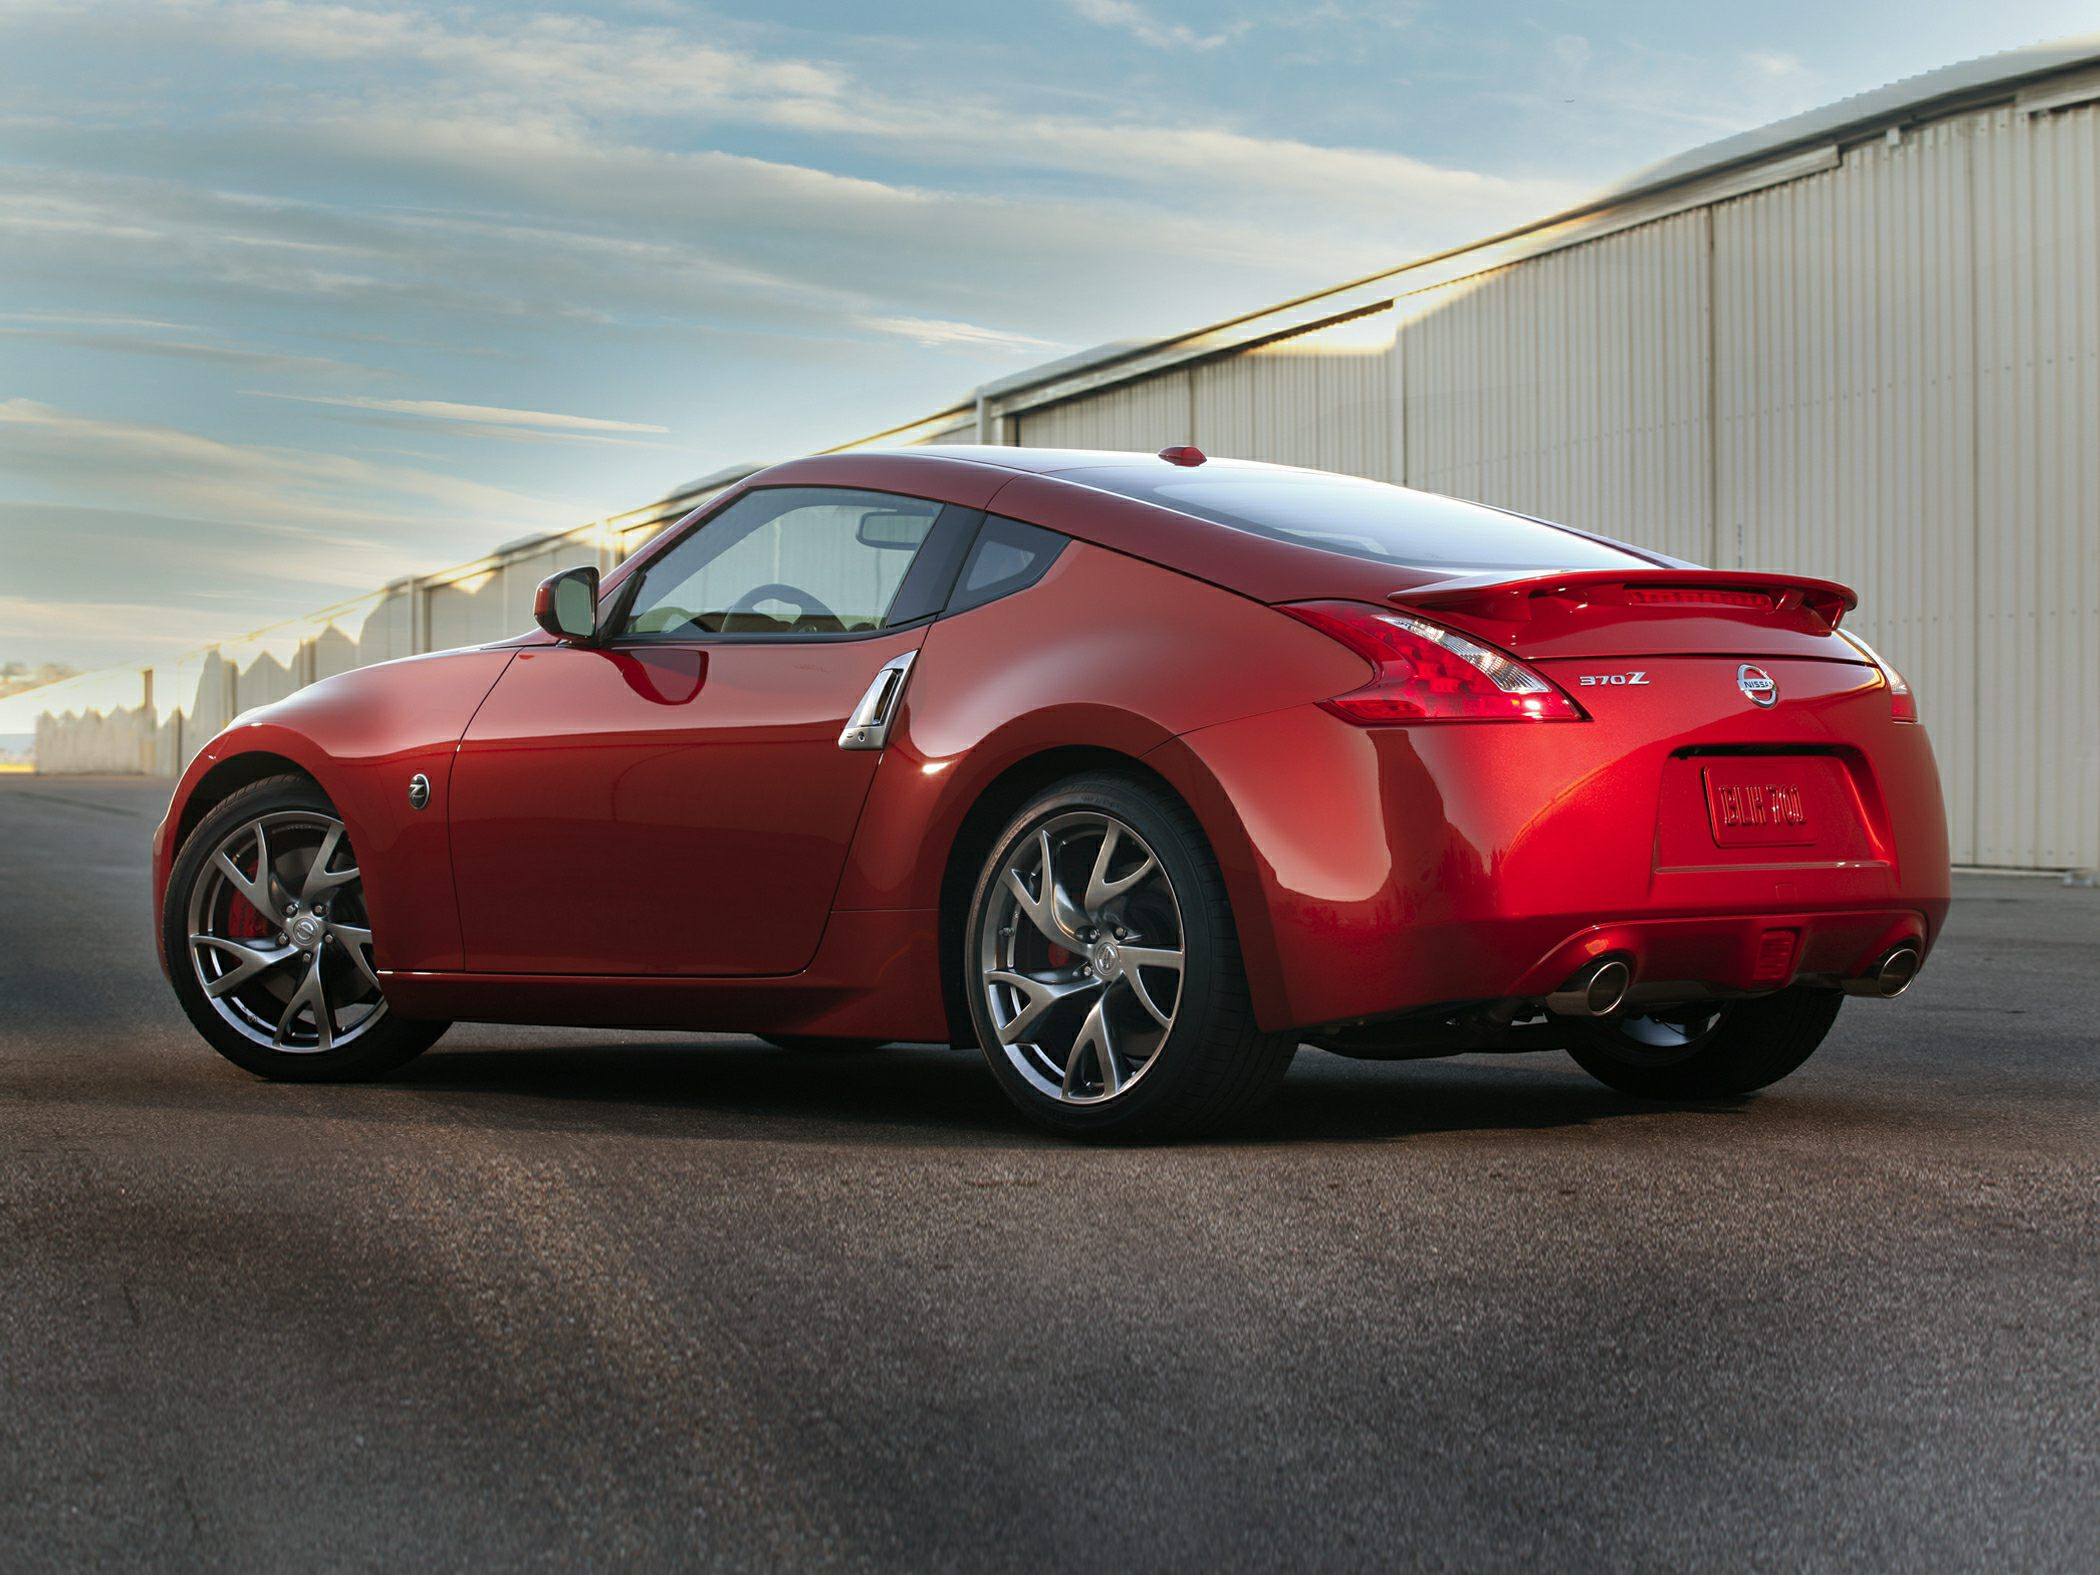 2016 Nissan 370Z Styles & Features Highlights